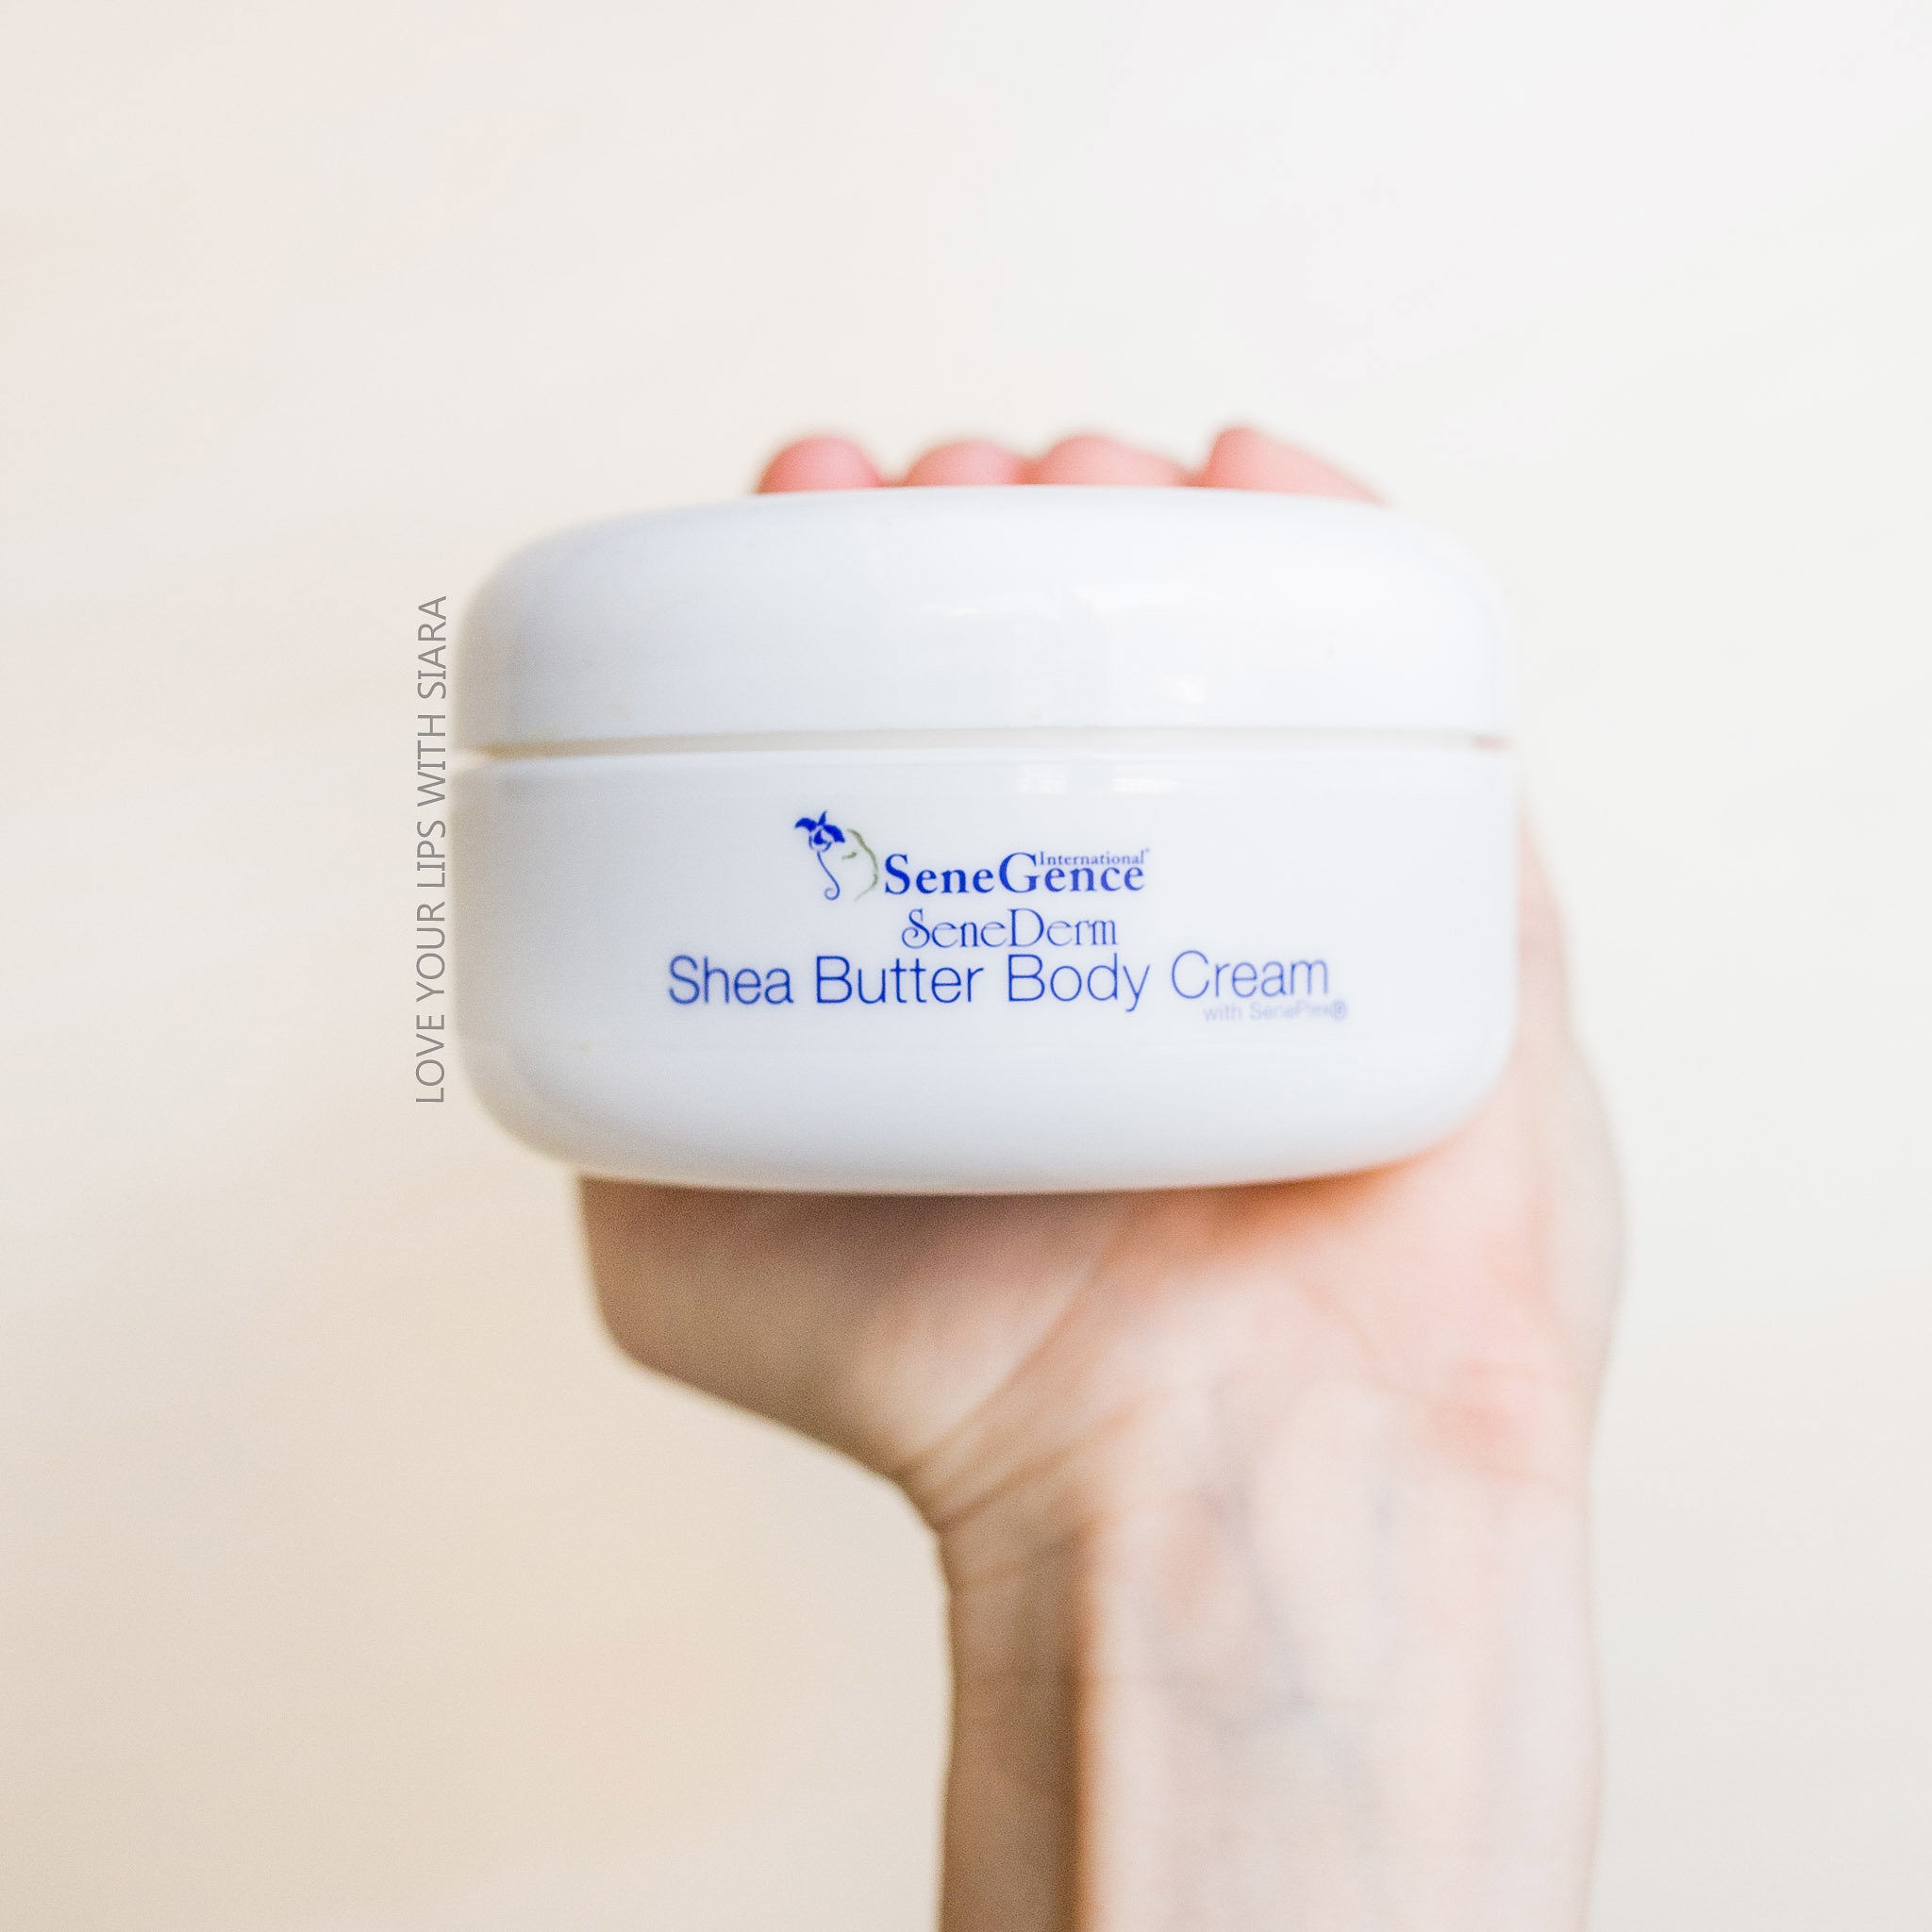 Shea butter body cream - with SenePlex